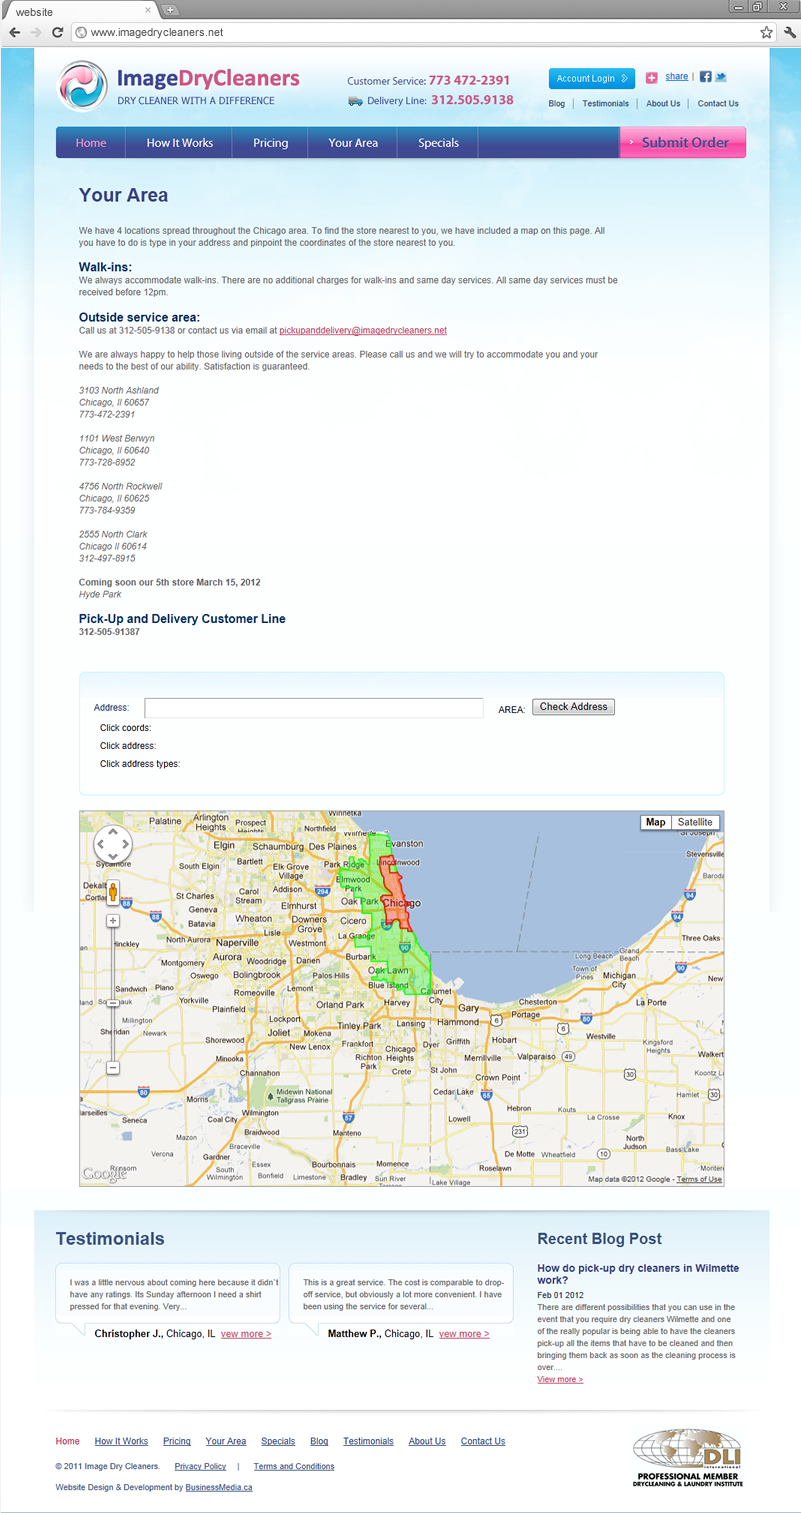 Your Area page